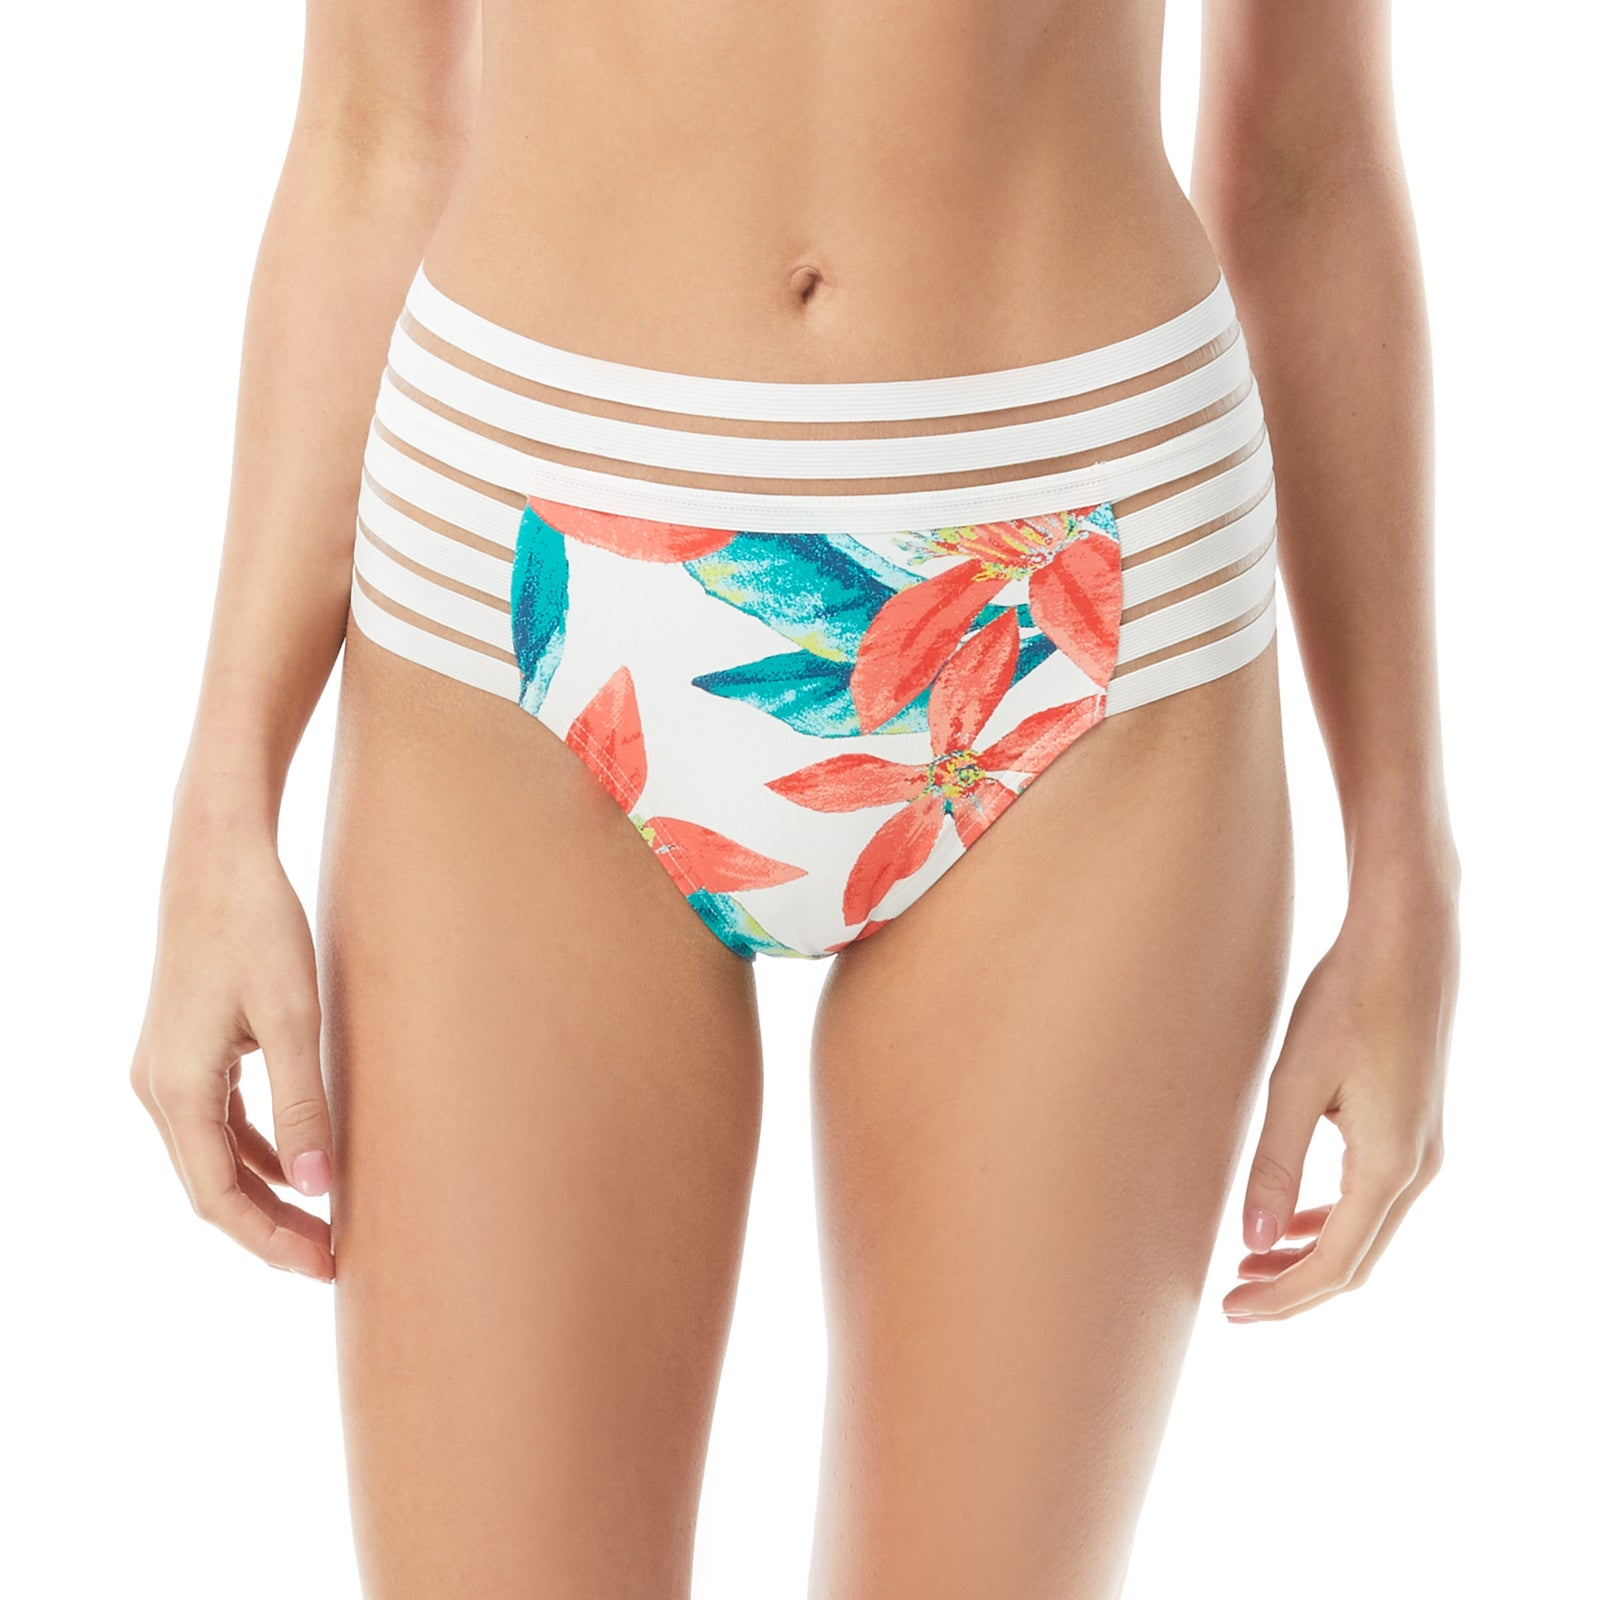 Vince Camuto Wild Oleander print bikini bottom High wasted bottom Mesh elastic detailing  white background with green and pink floral print front view